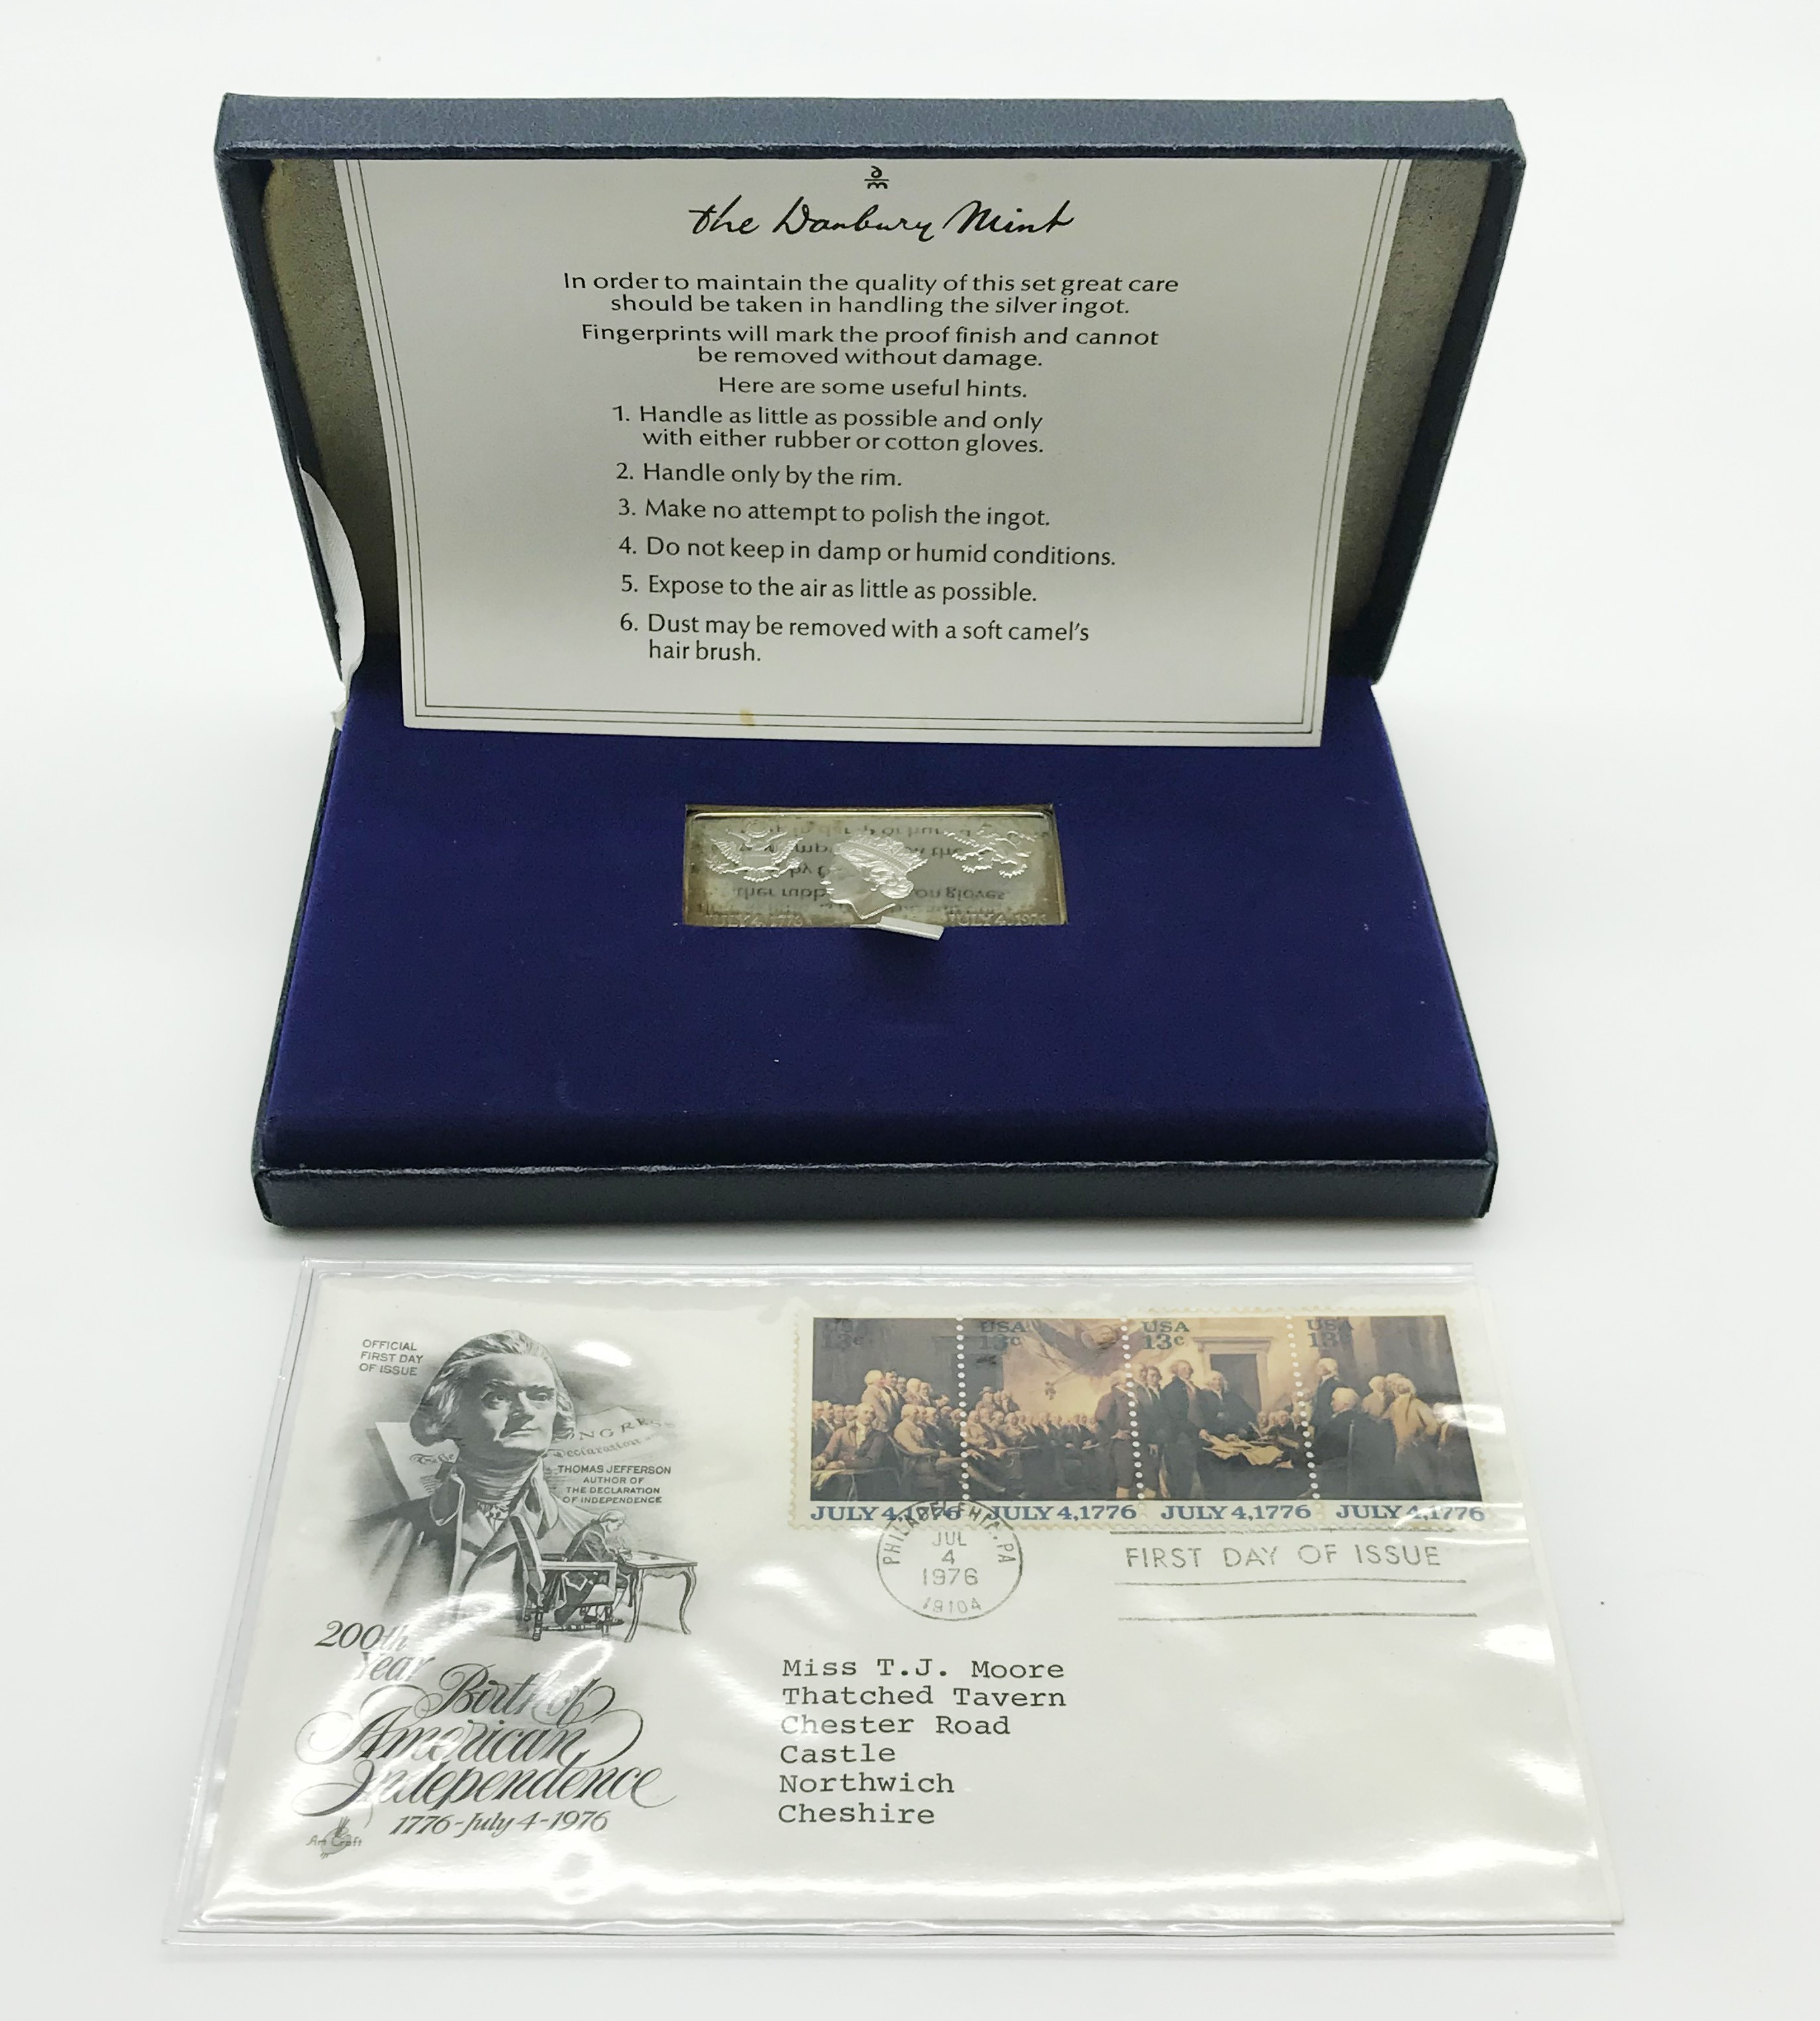 Lot 58 - 1976 HALLMARKED STERLING SILVER INGOT - 200 YEARS OF AMERICAN INDEPENDENCE